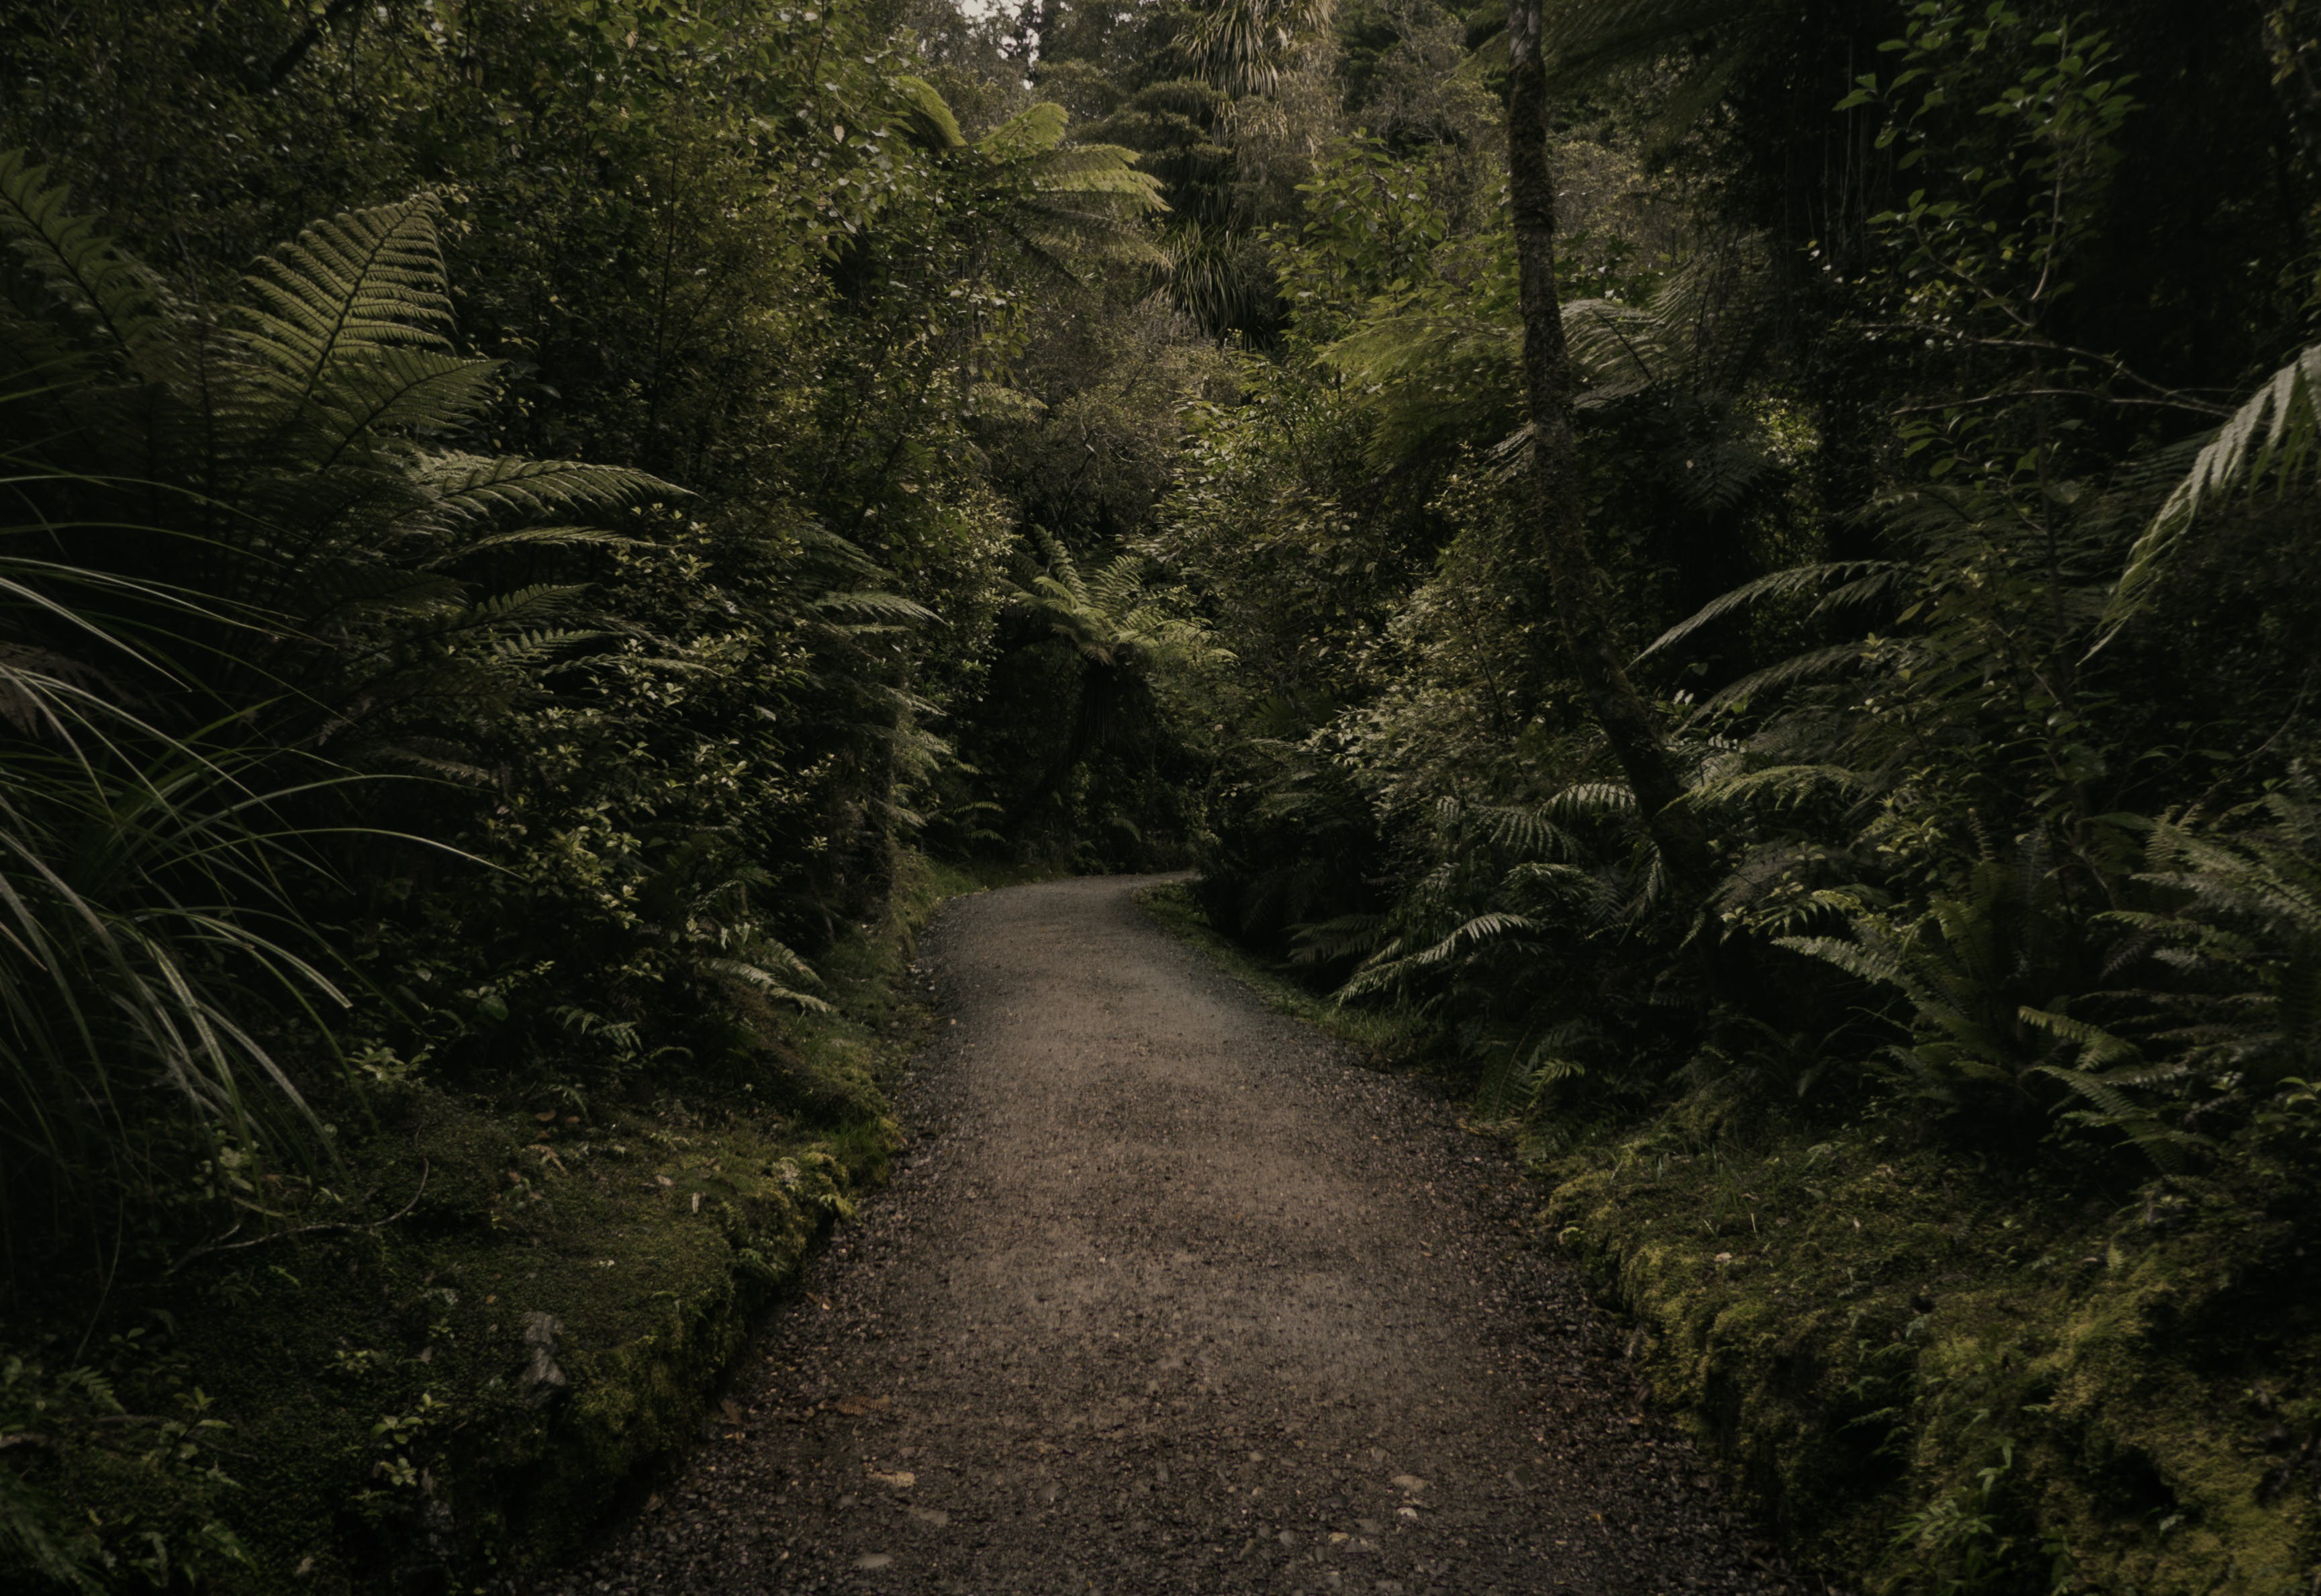 Free stock photo of nature, dark, forest, path